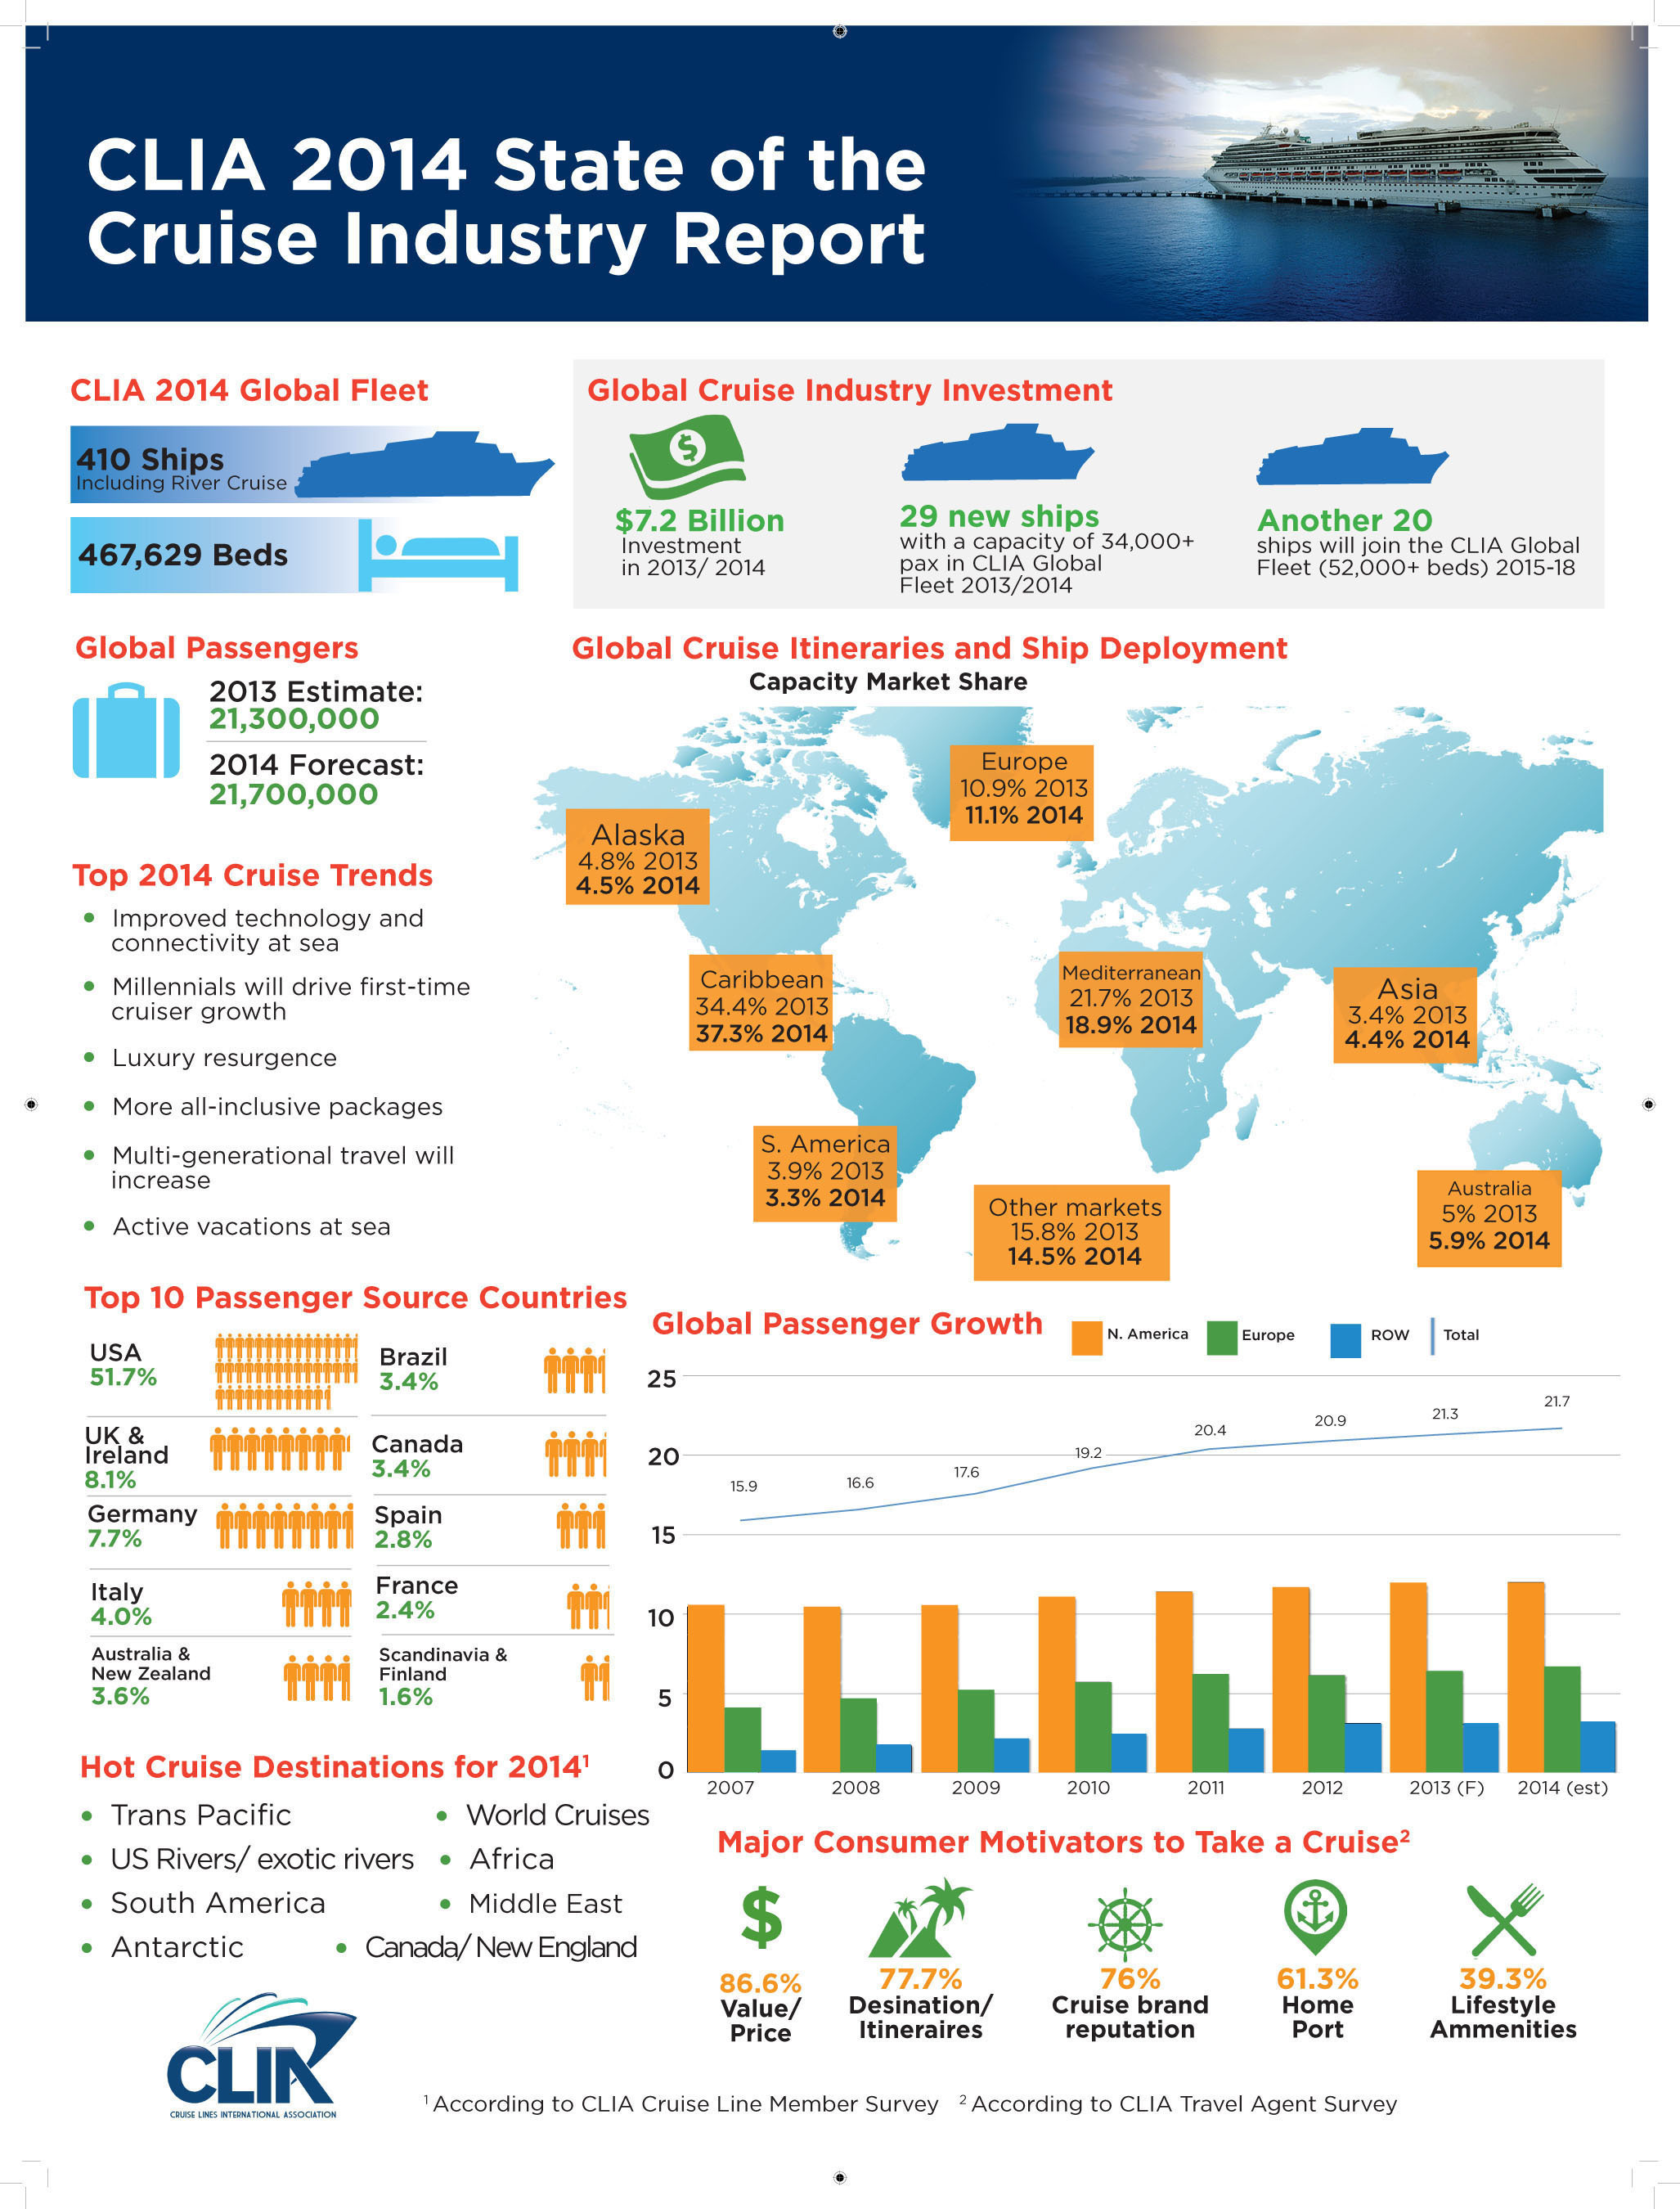 2014 CLIA Cruise Industry Overview. (PRNewsFoto/Cruise Lines International Association (CLIA)) ...